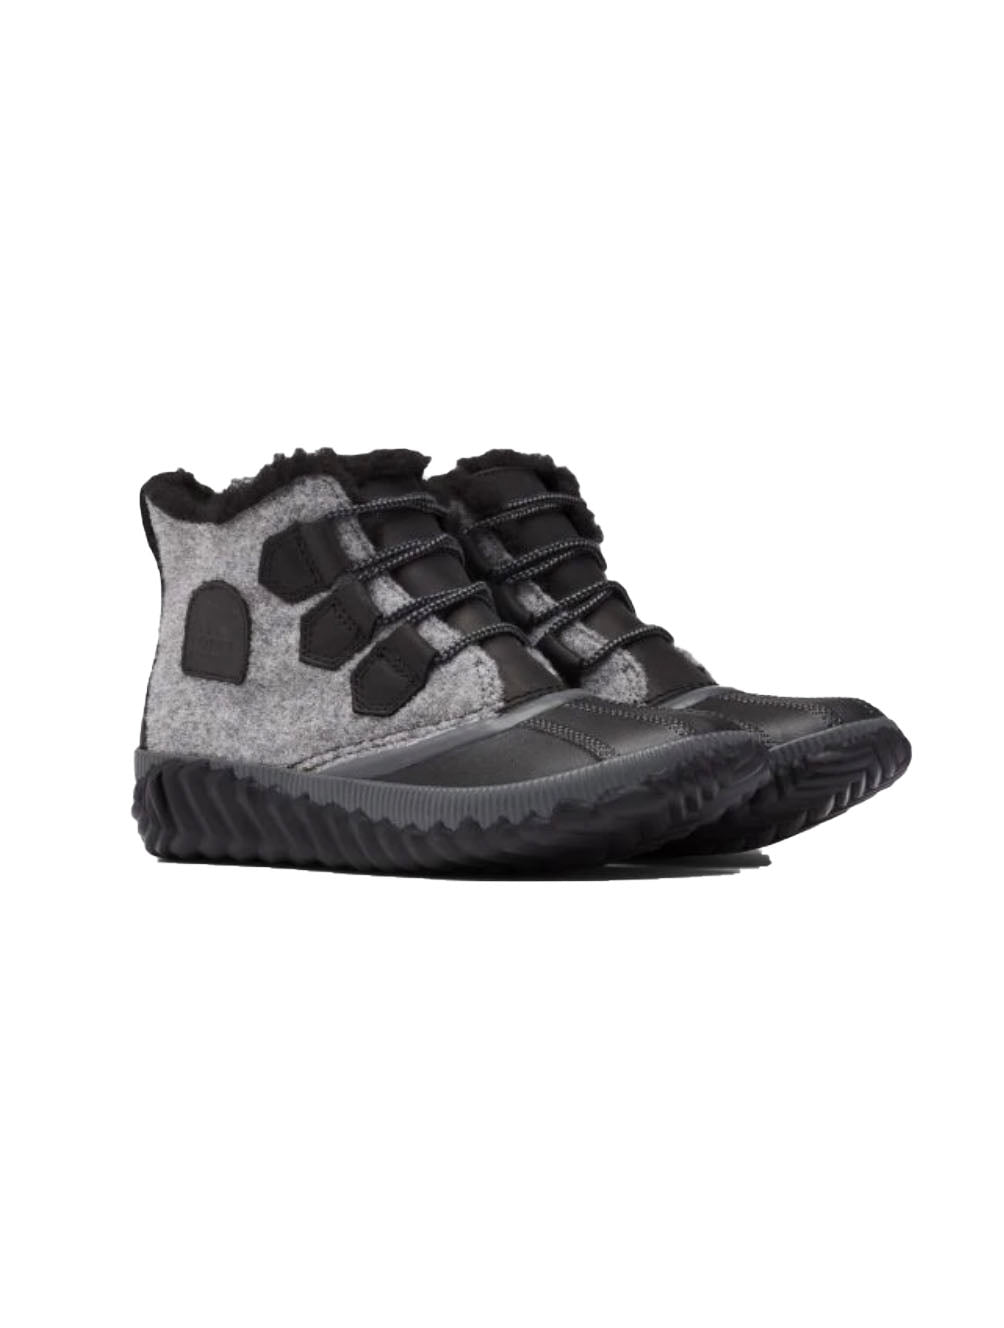 Sorel Out N About Plus in Black Felt